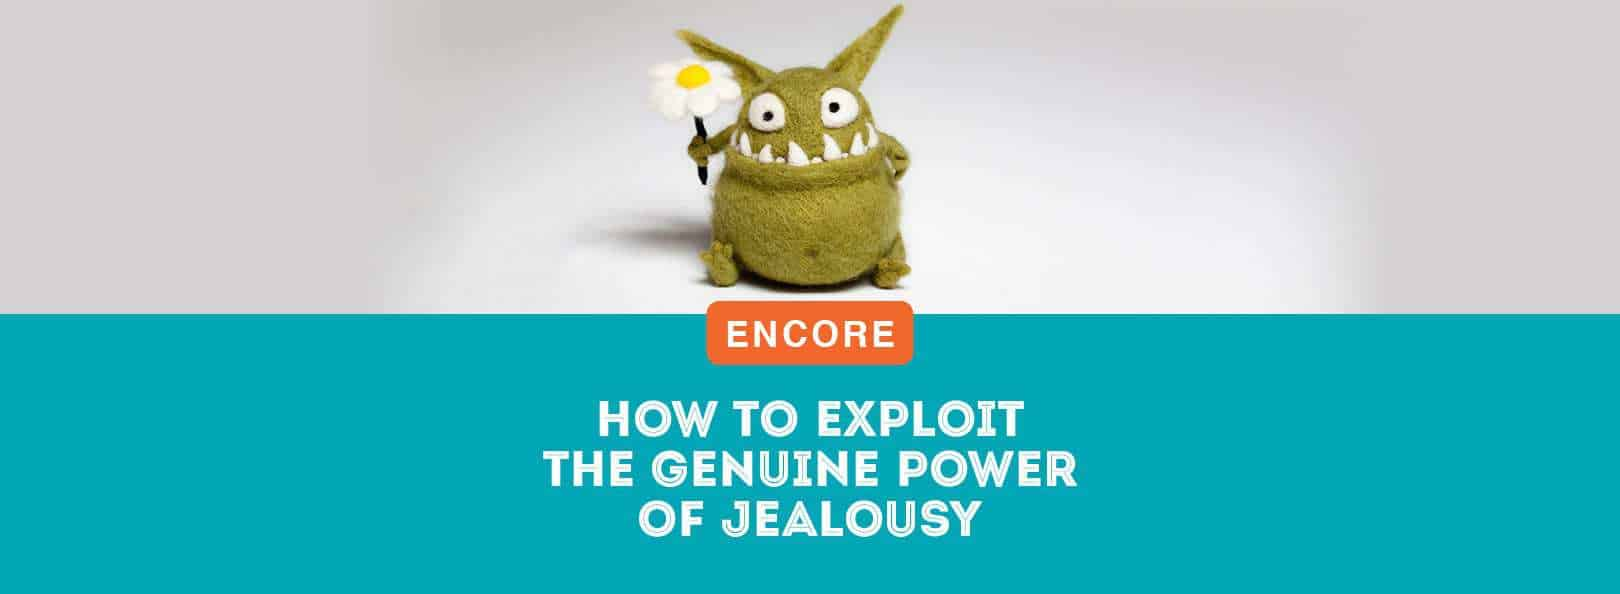 ENCORE: How to Exploit the Genuine Power of Jealousy